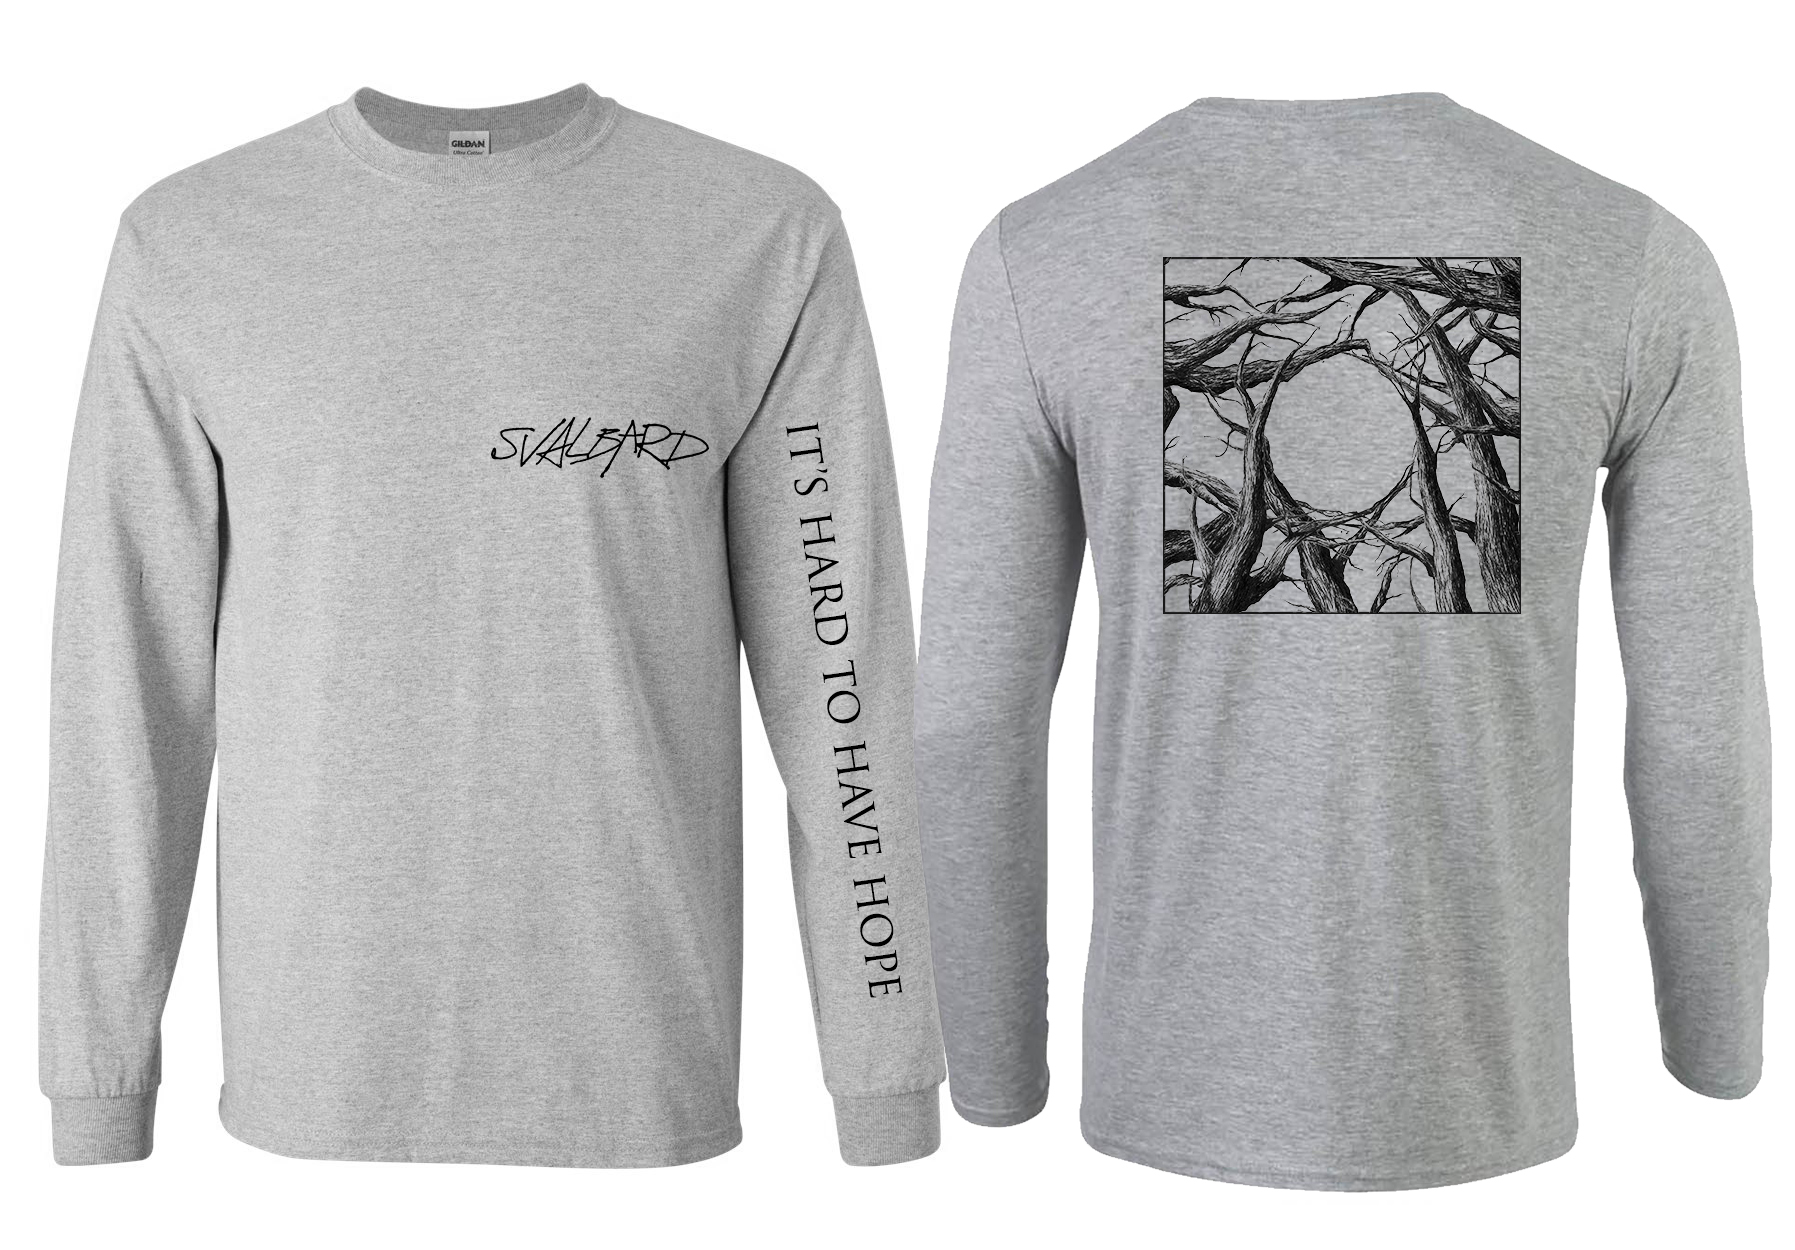 Svalbard - It's Hard to have longsleeve